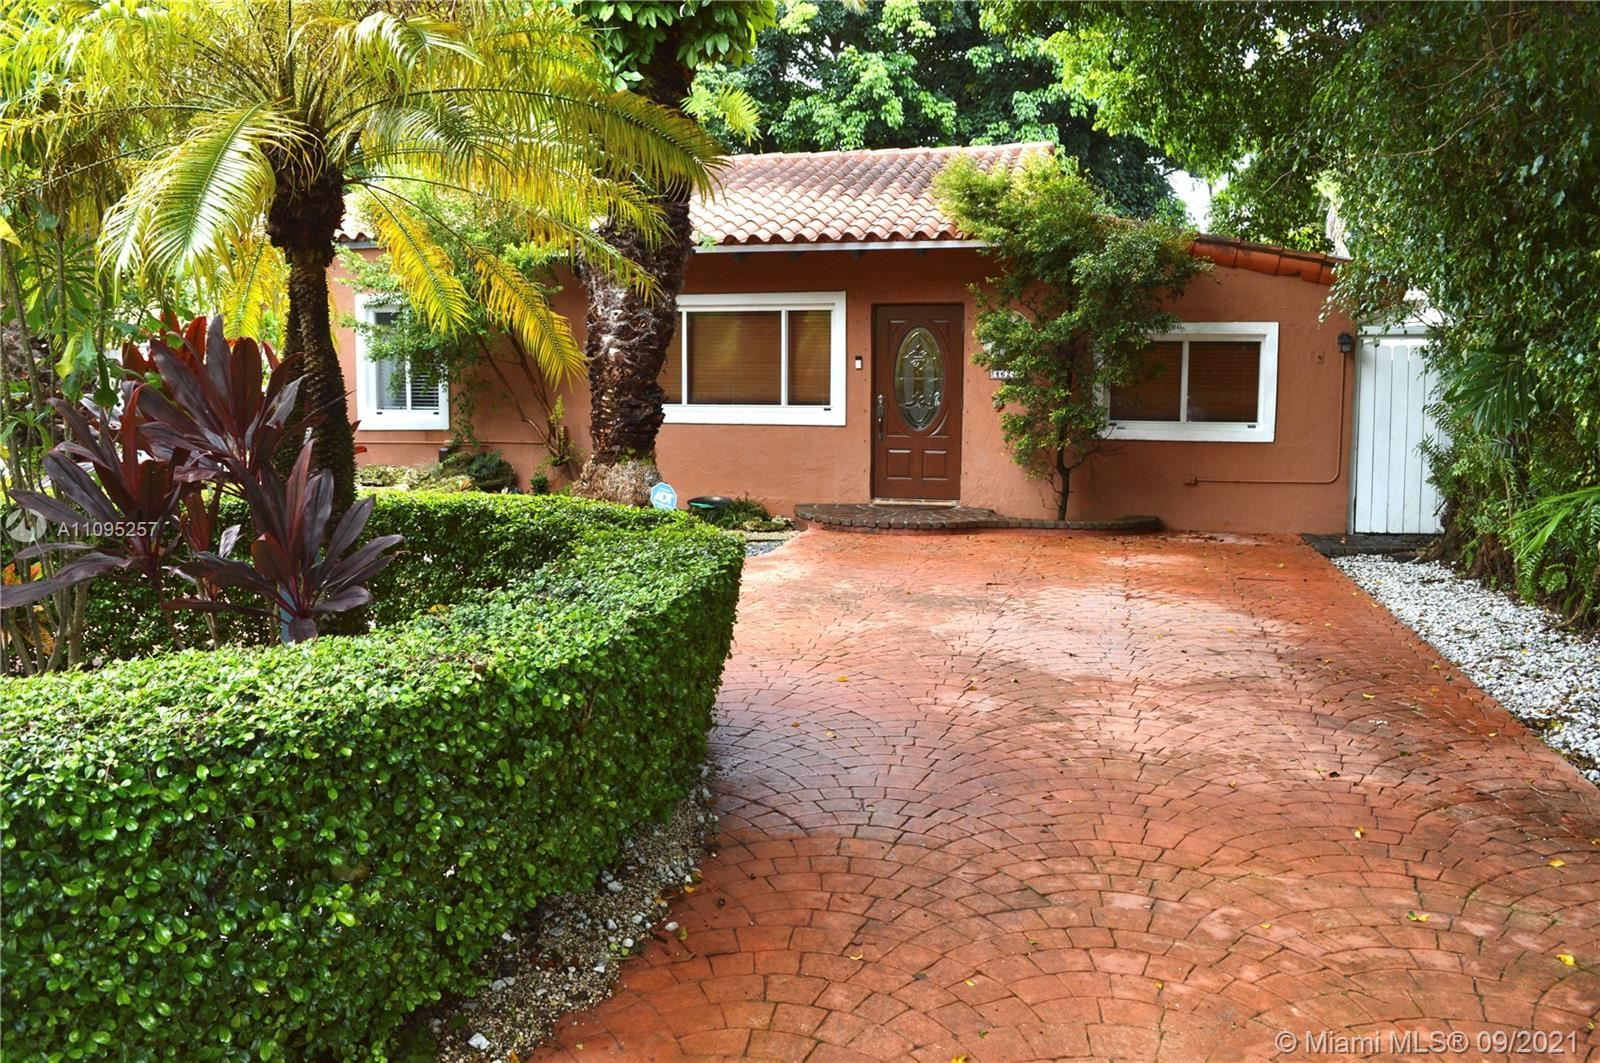 Photo of 4624 SW 11th St, Coral Gables, FL 33134 (MLS # A11095257)